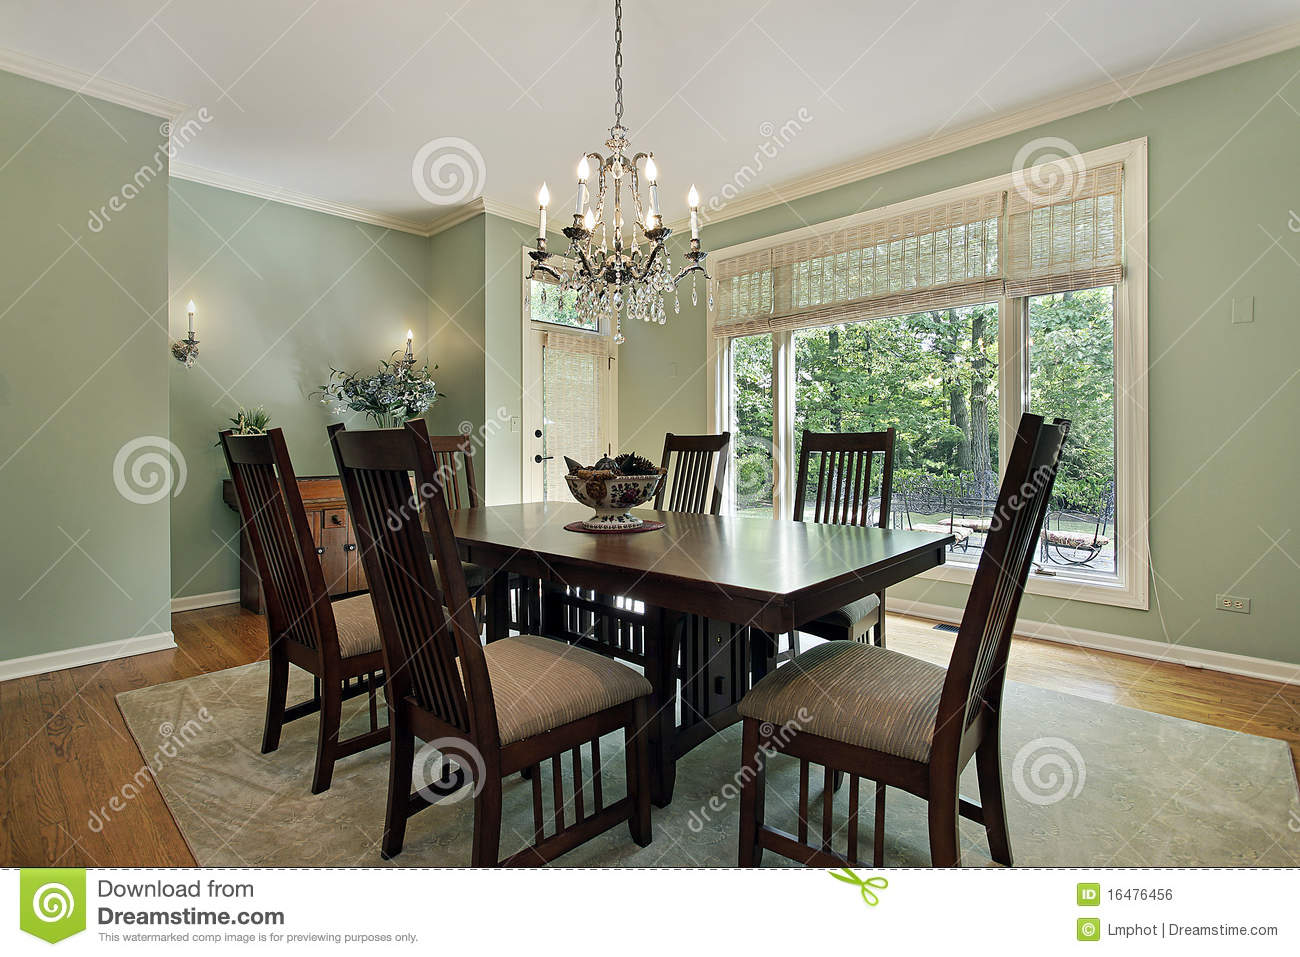 Dining Room With Green Walls Stock Photo Image 16476456